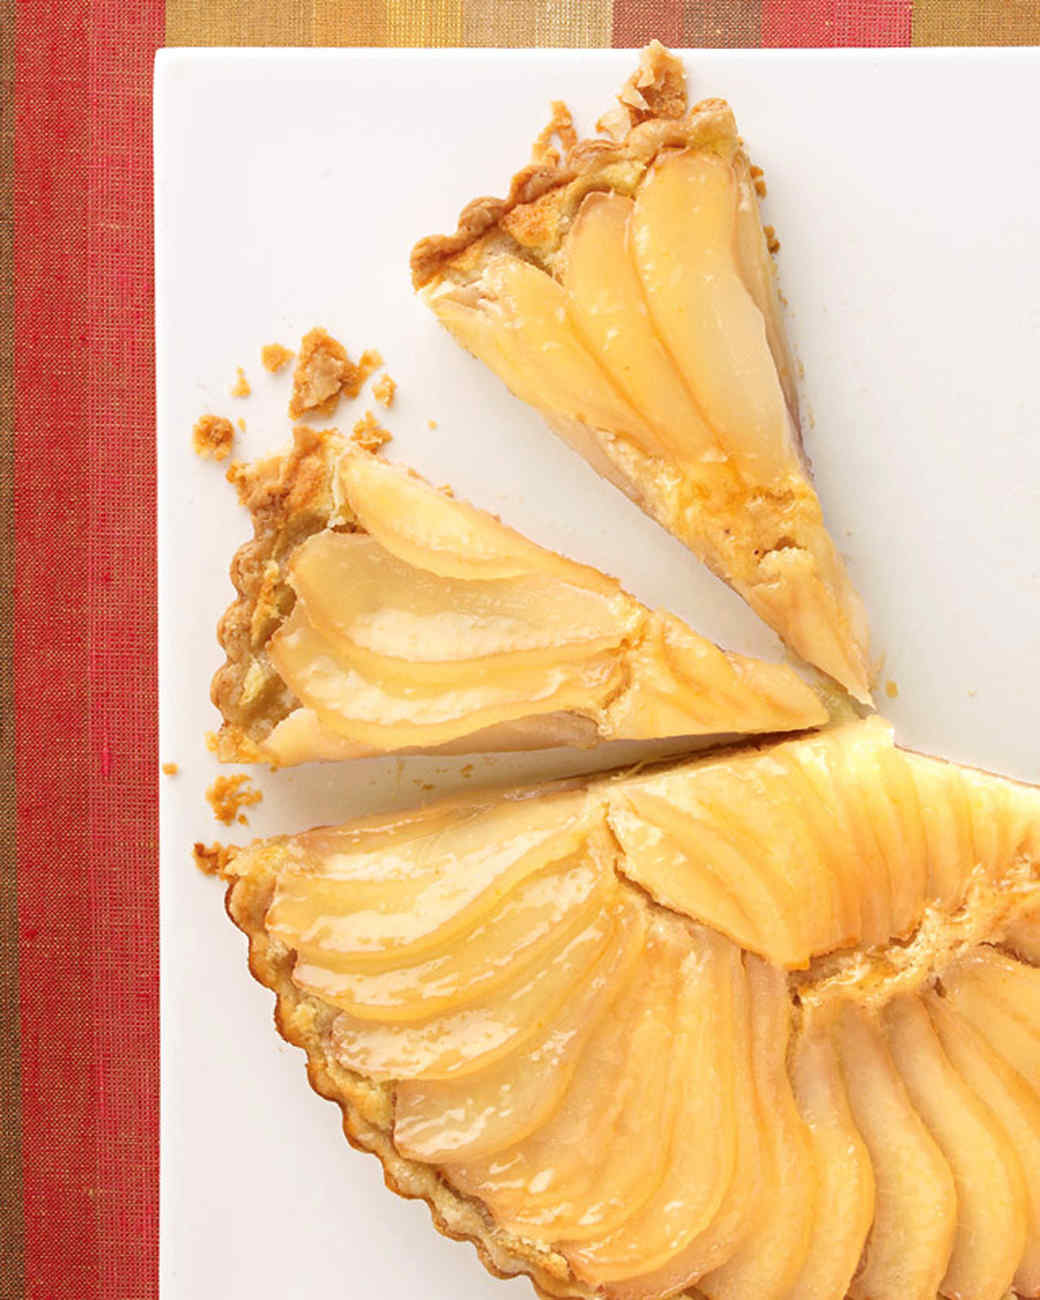 John's Pear and Almond-Cream Tart